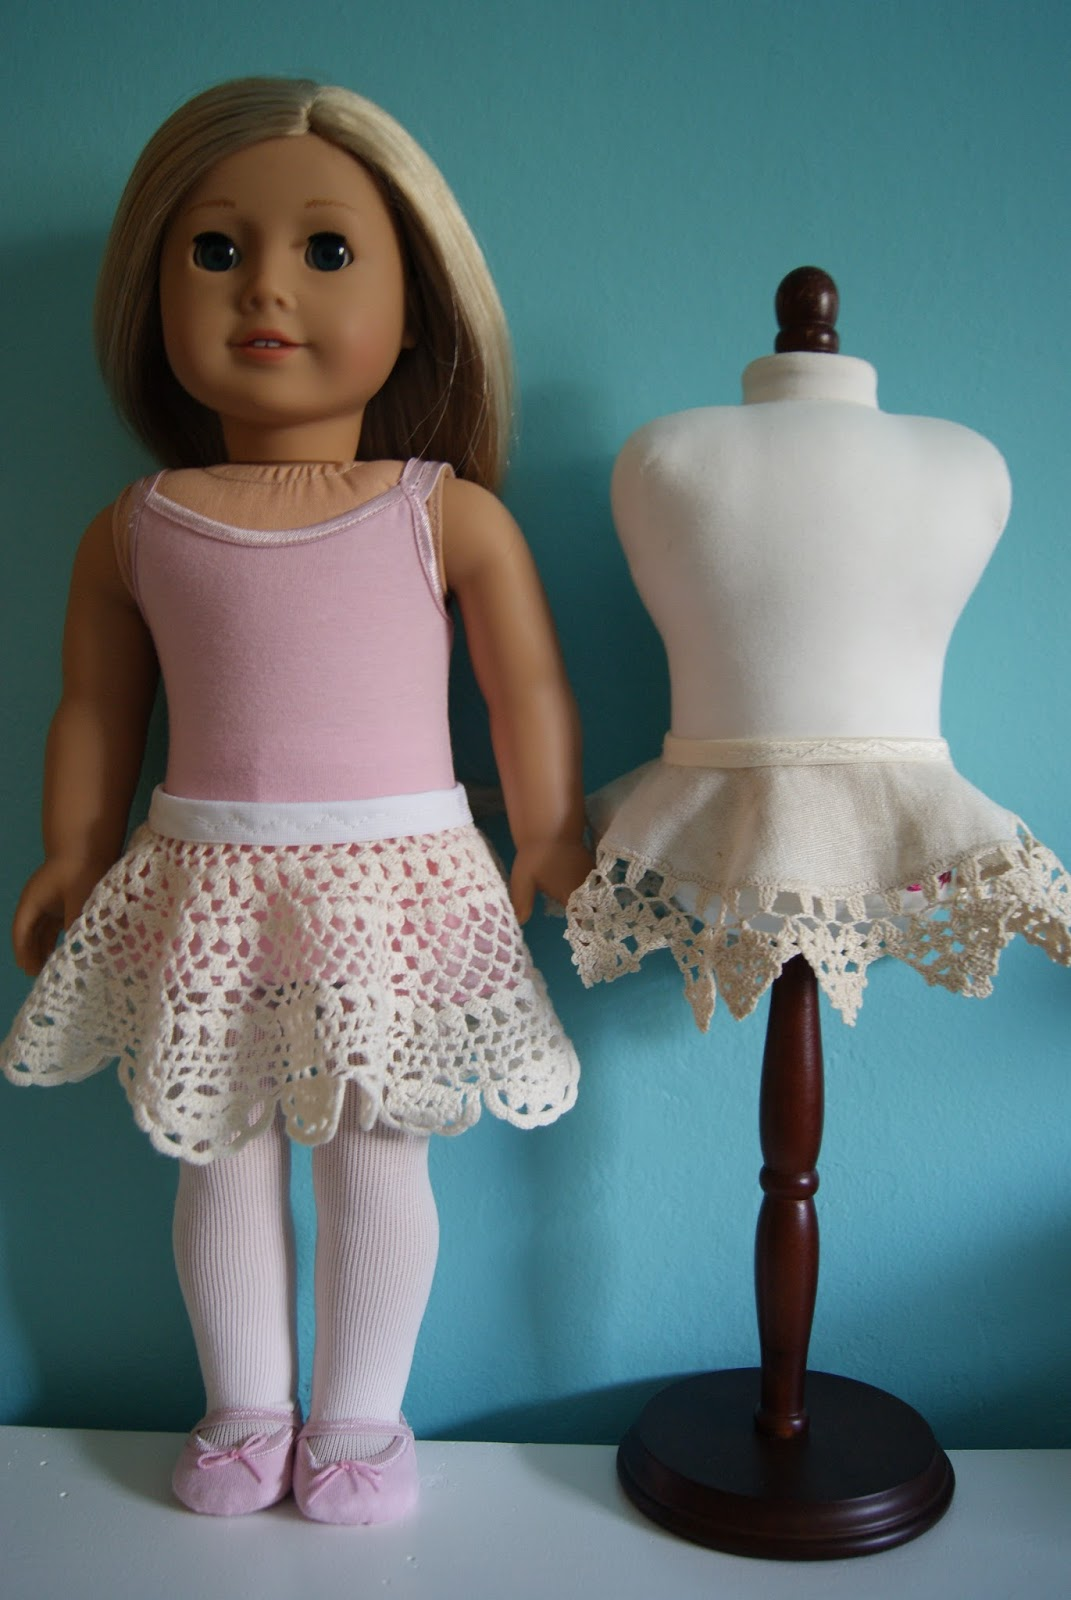 doily circle skirt for 18-inch doll by nest full of eggs